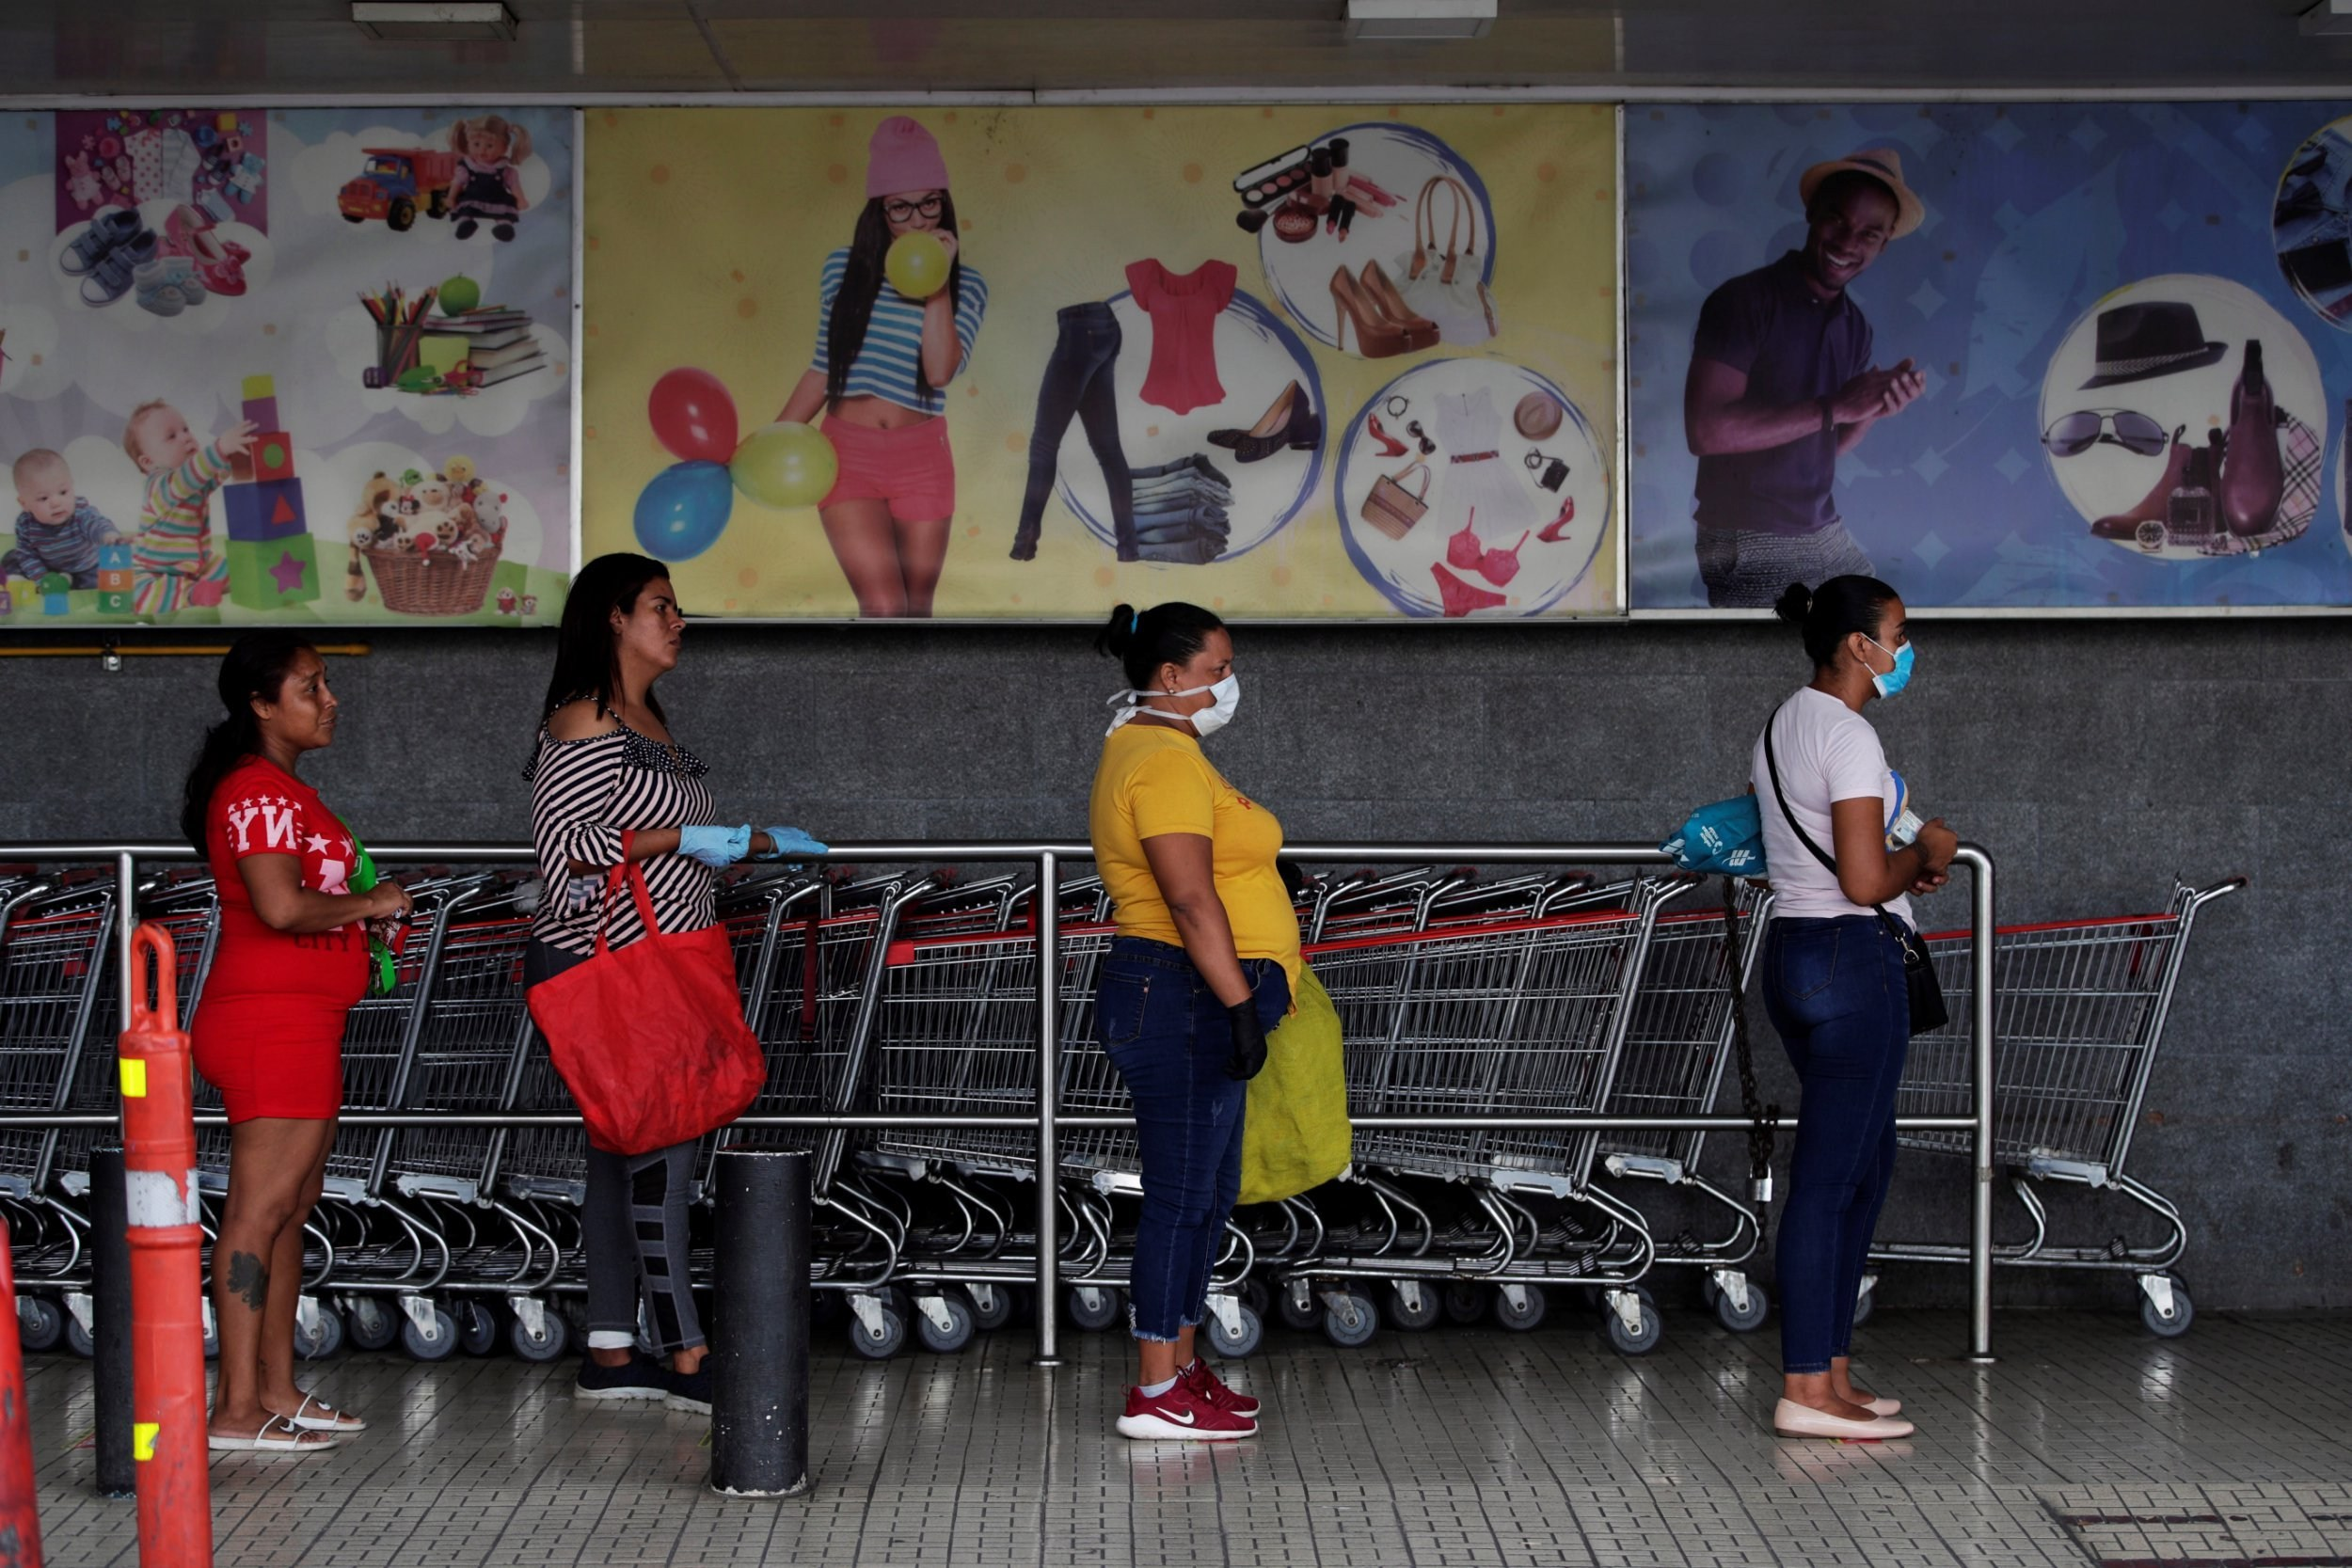 Peru and Panama's lockdown only allows men and women outside on different days